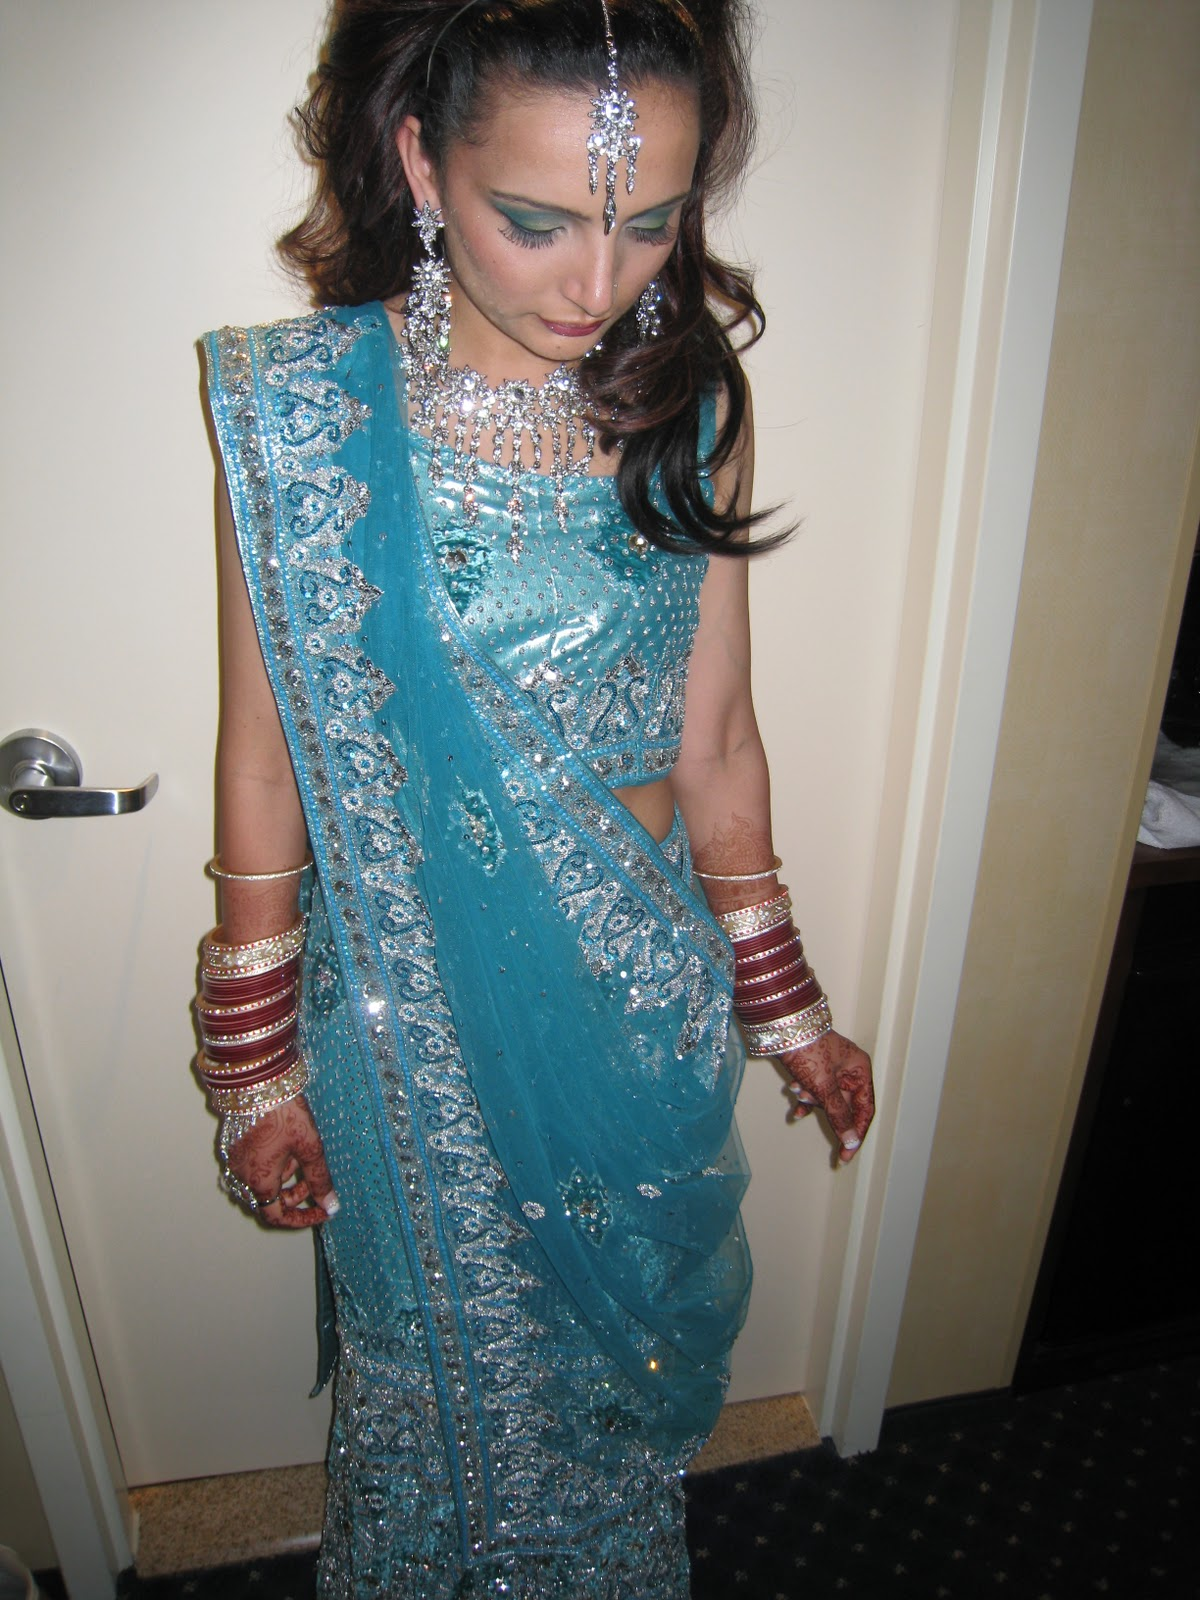 RED Bridal Wear: A South Asian Tradition? | In The Mix